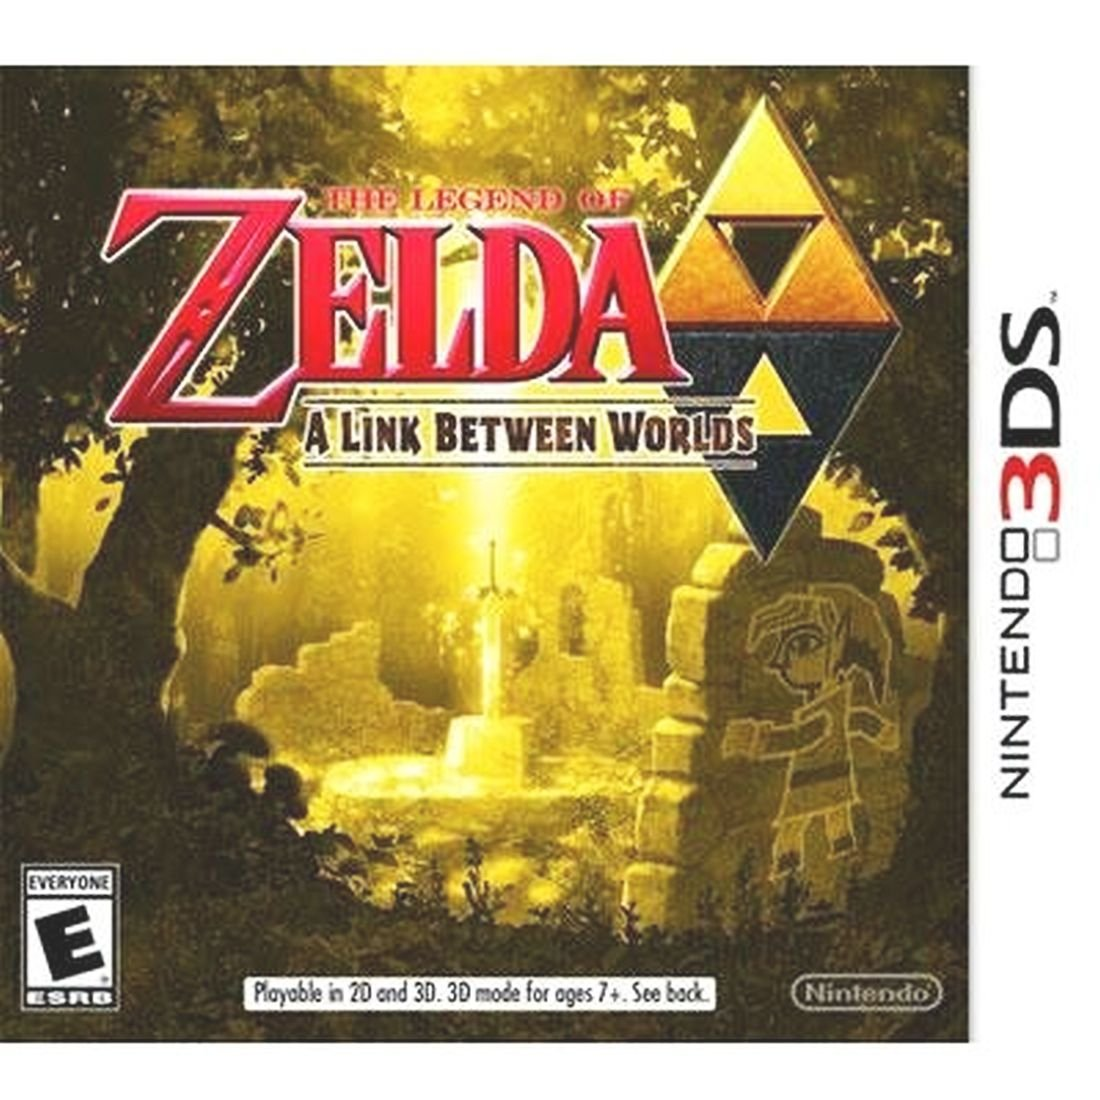 The Legend of Zelda: A Link Between Worlds - Nintendo 3DS herbert george wells the war of the worlds